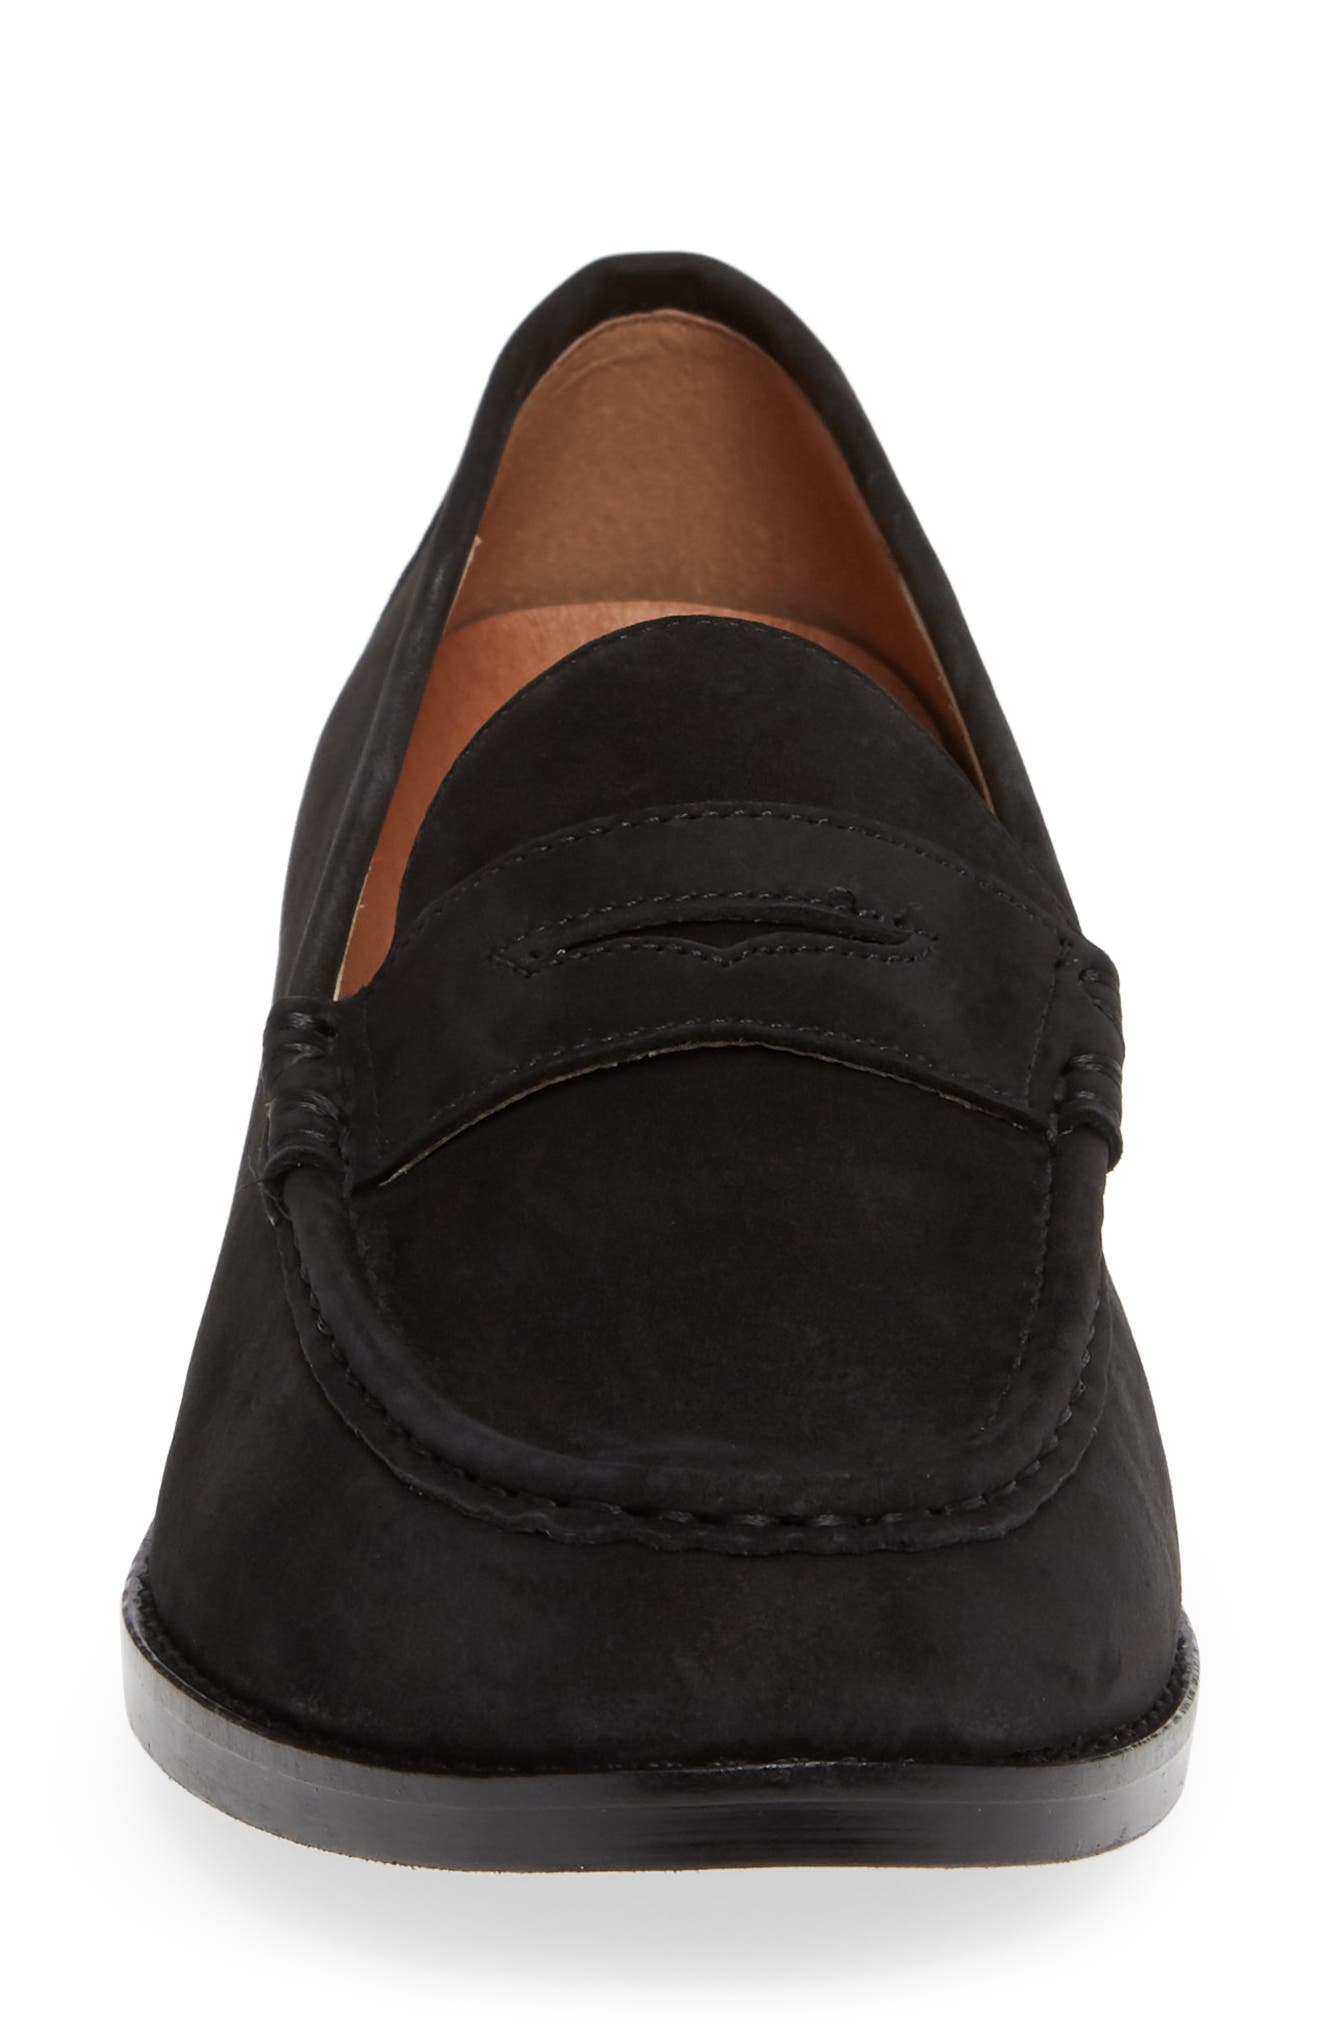 Waverly Loafer,                             Alternate thumbnail 4, color,                             BLACK LEATHER